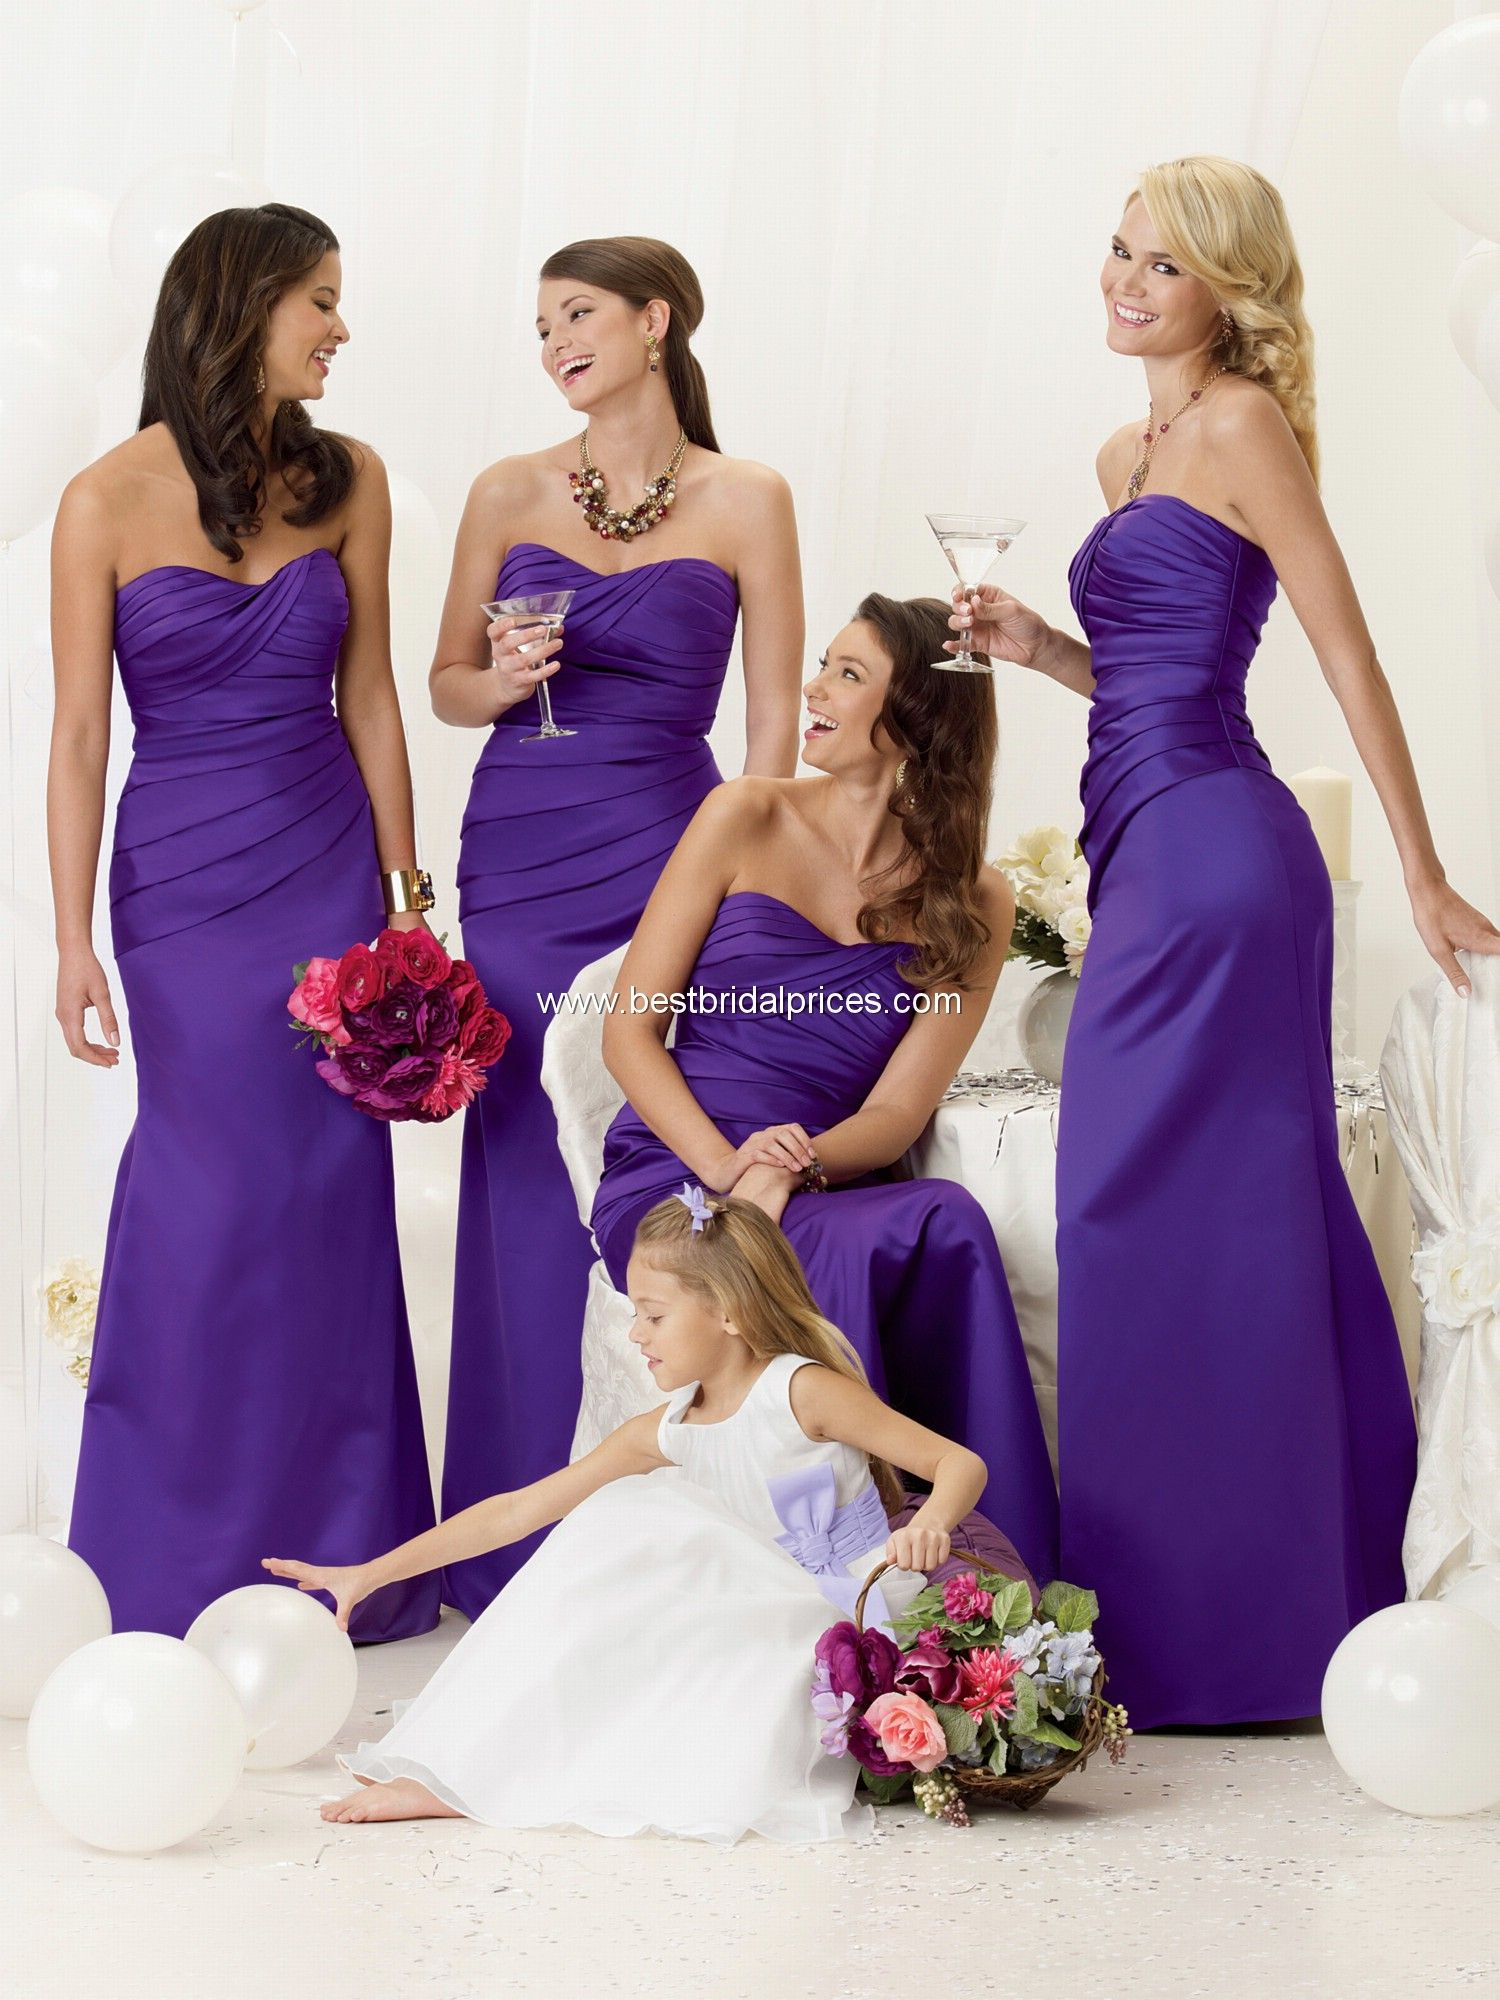 Bridesmaids dresses not my color but in a dark blue or red it